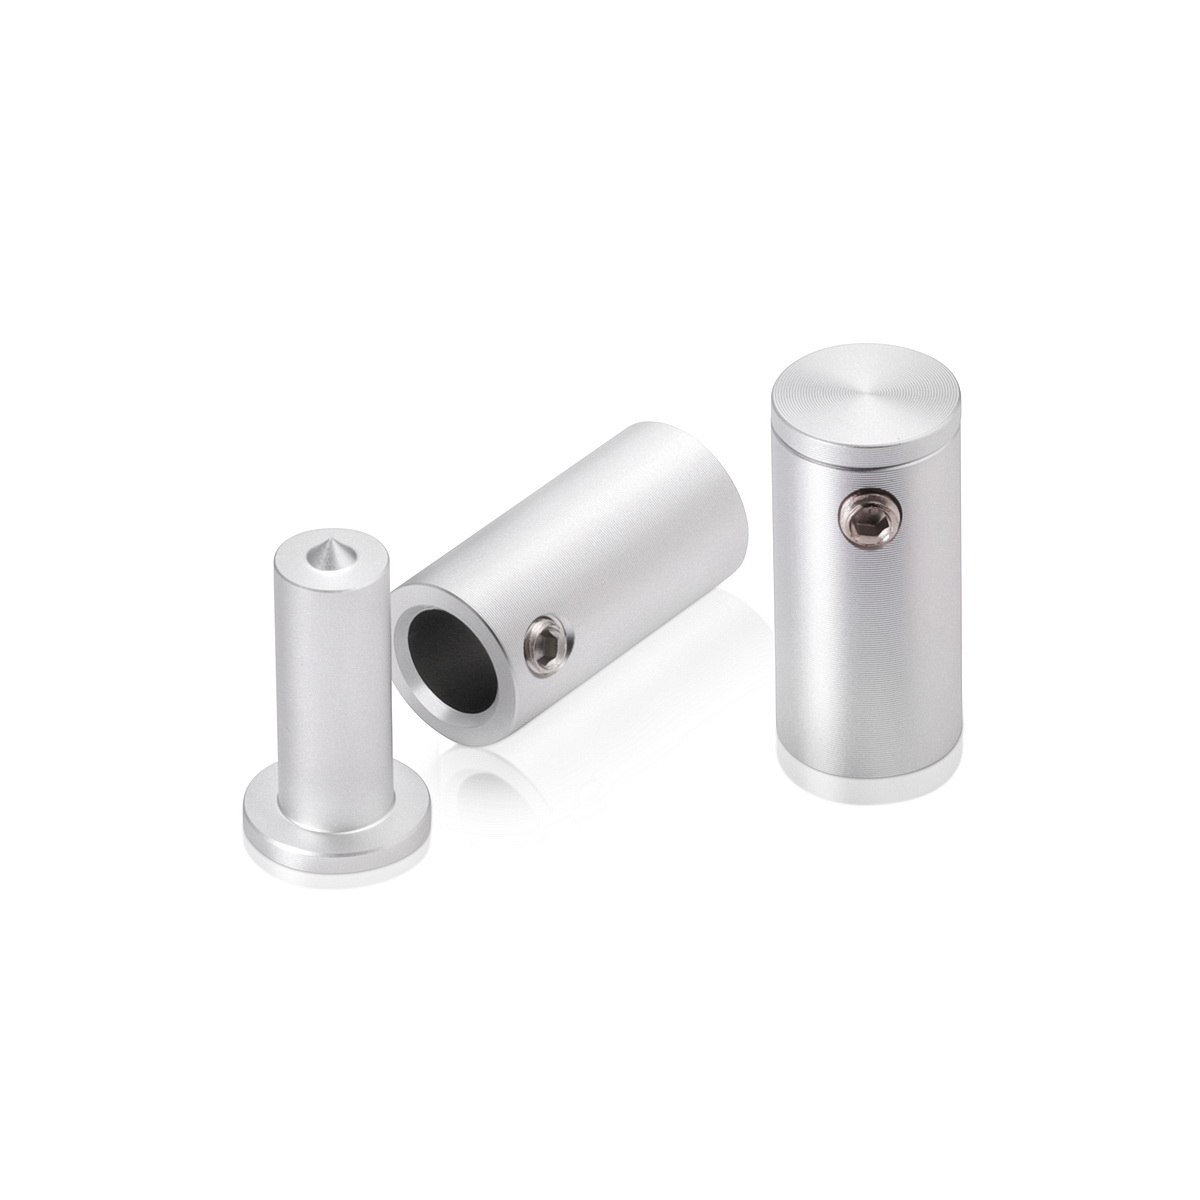 1/2'' Diameter x 1'' Barrel Length, Aluminum Glass Standoff Clear Anodized Finish (Indoor or Outdoor Use)